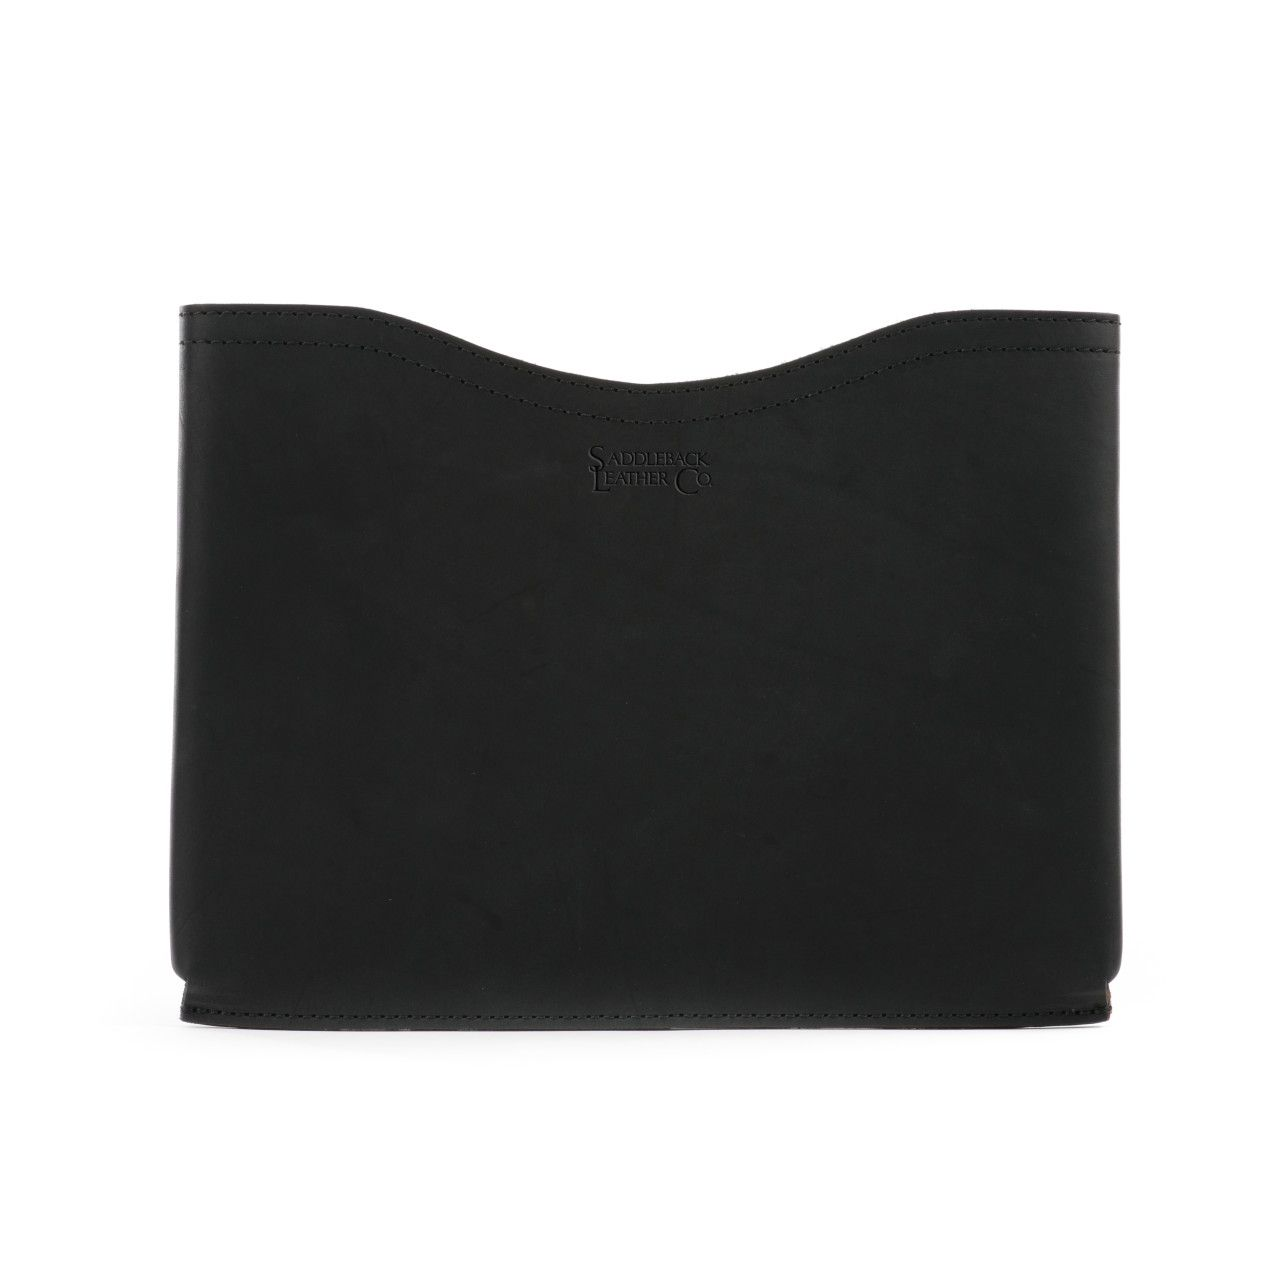 macbook pro leather sleeve small in black leather